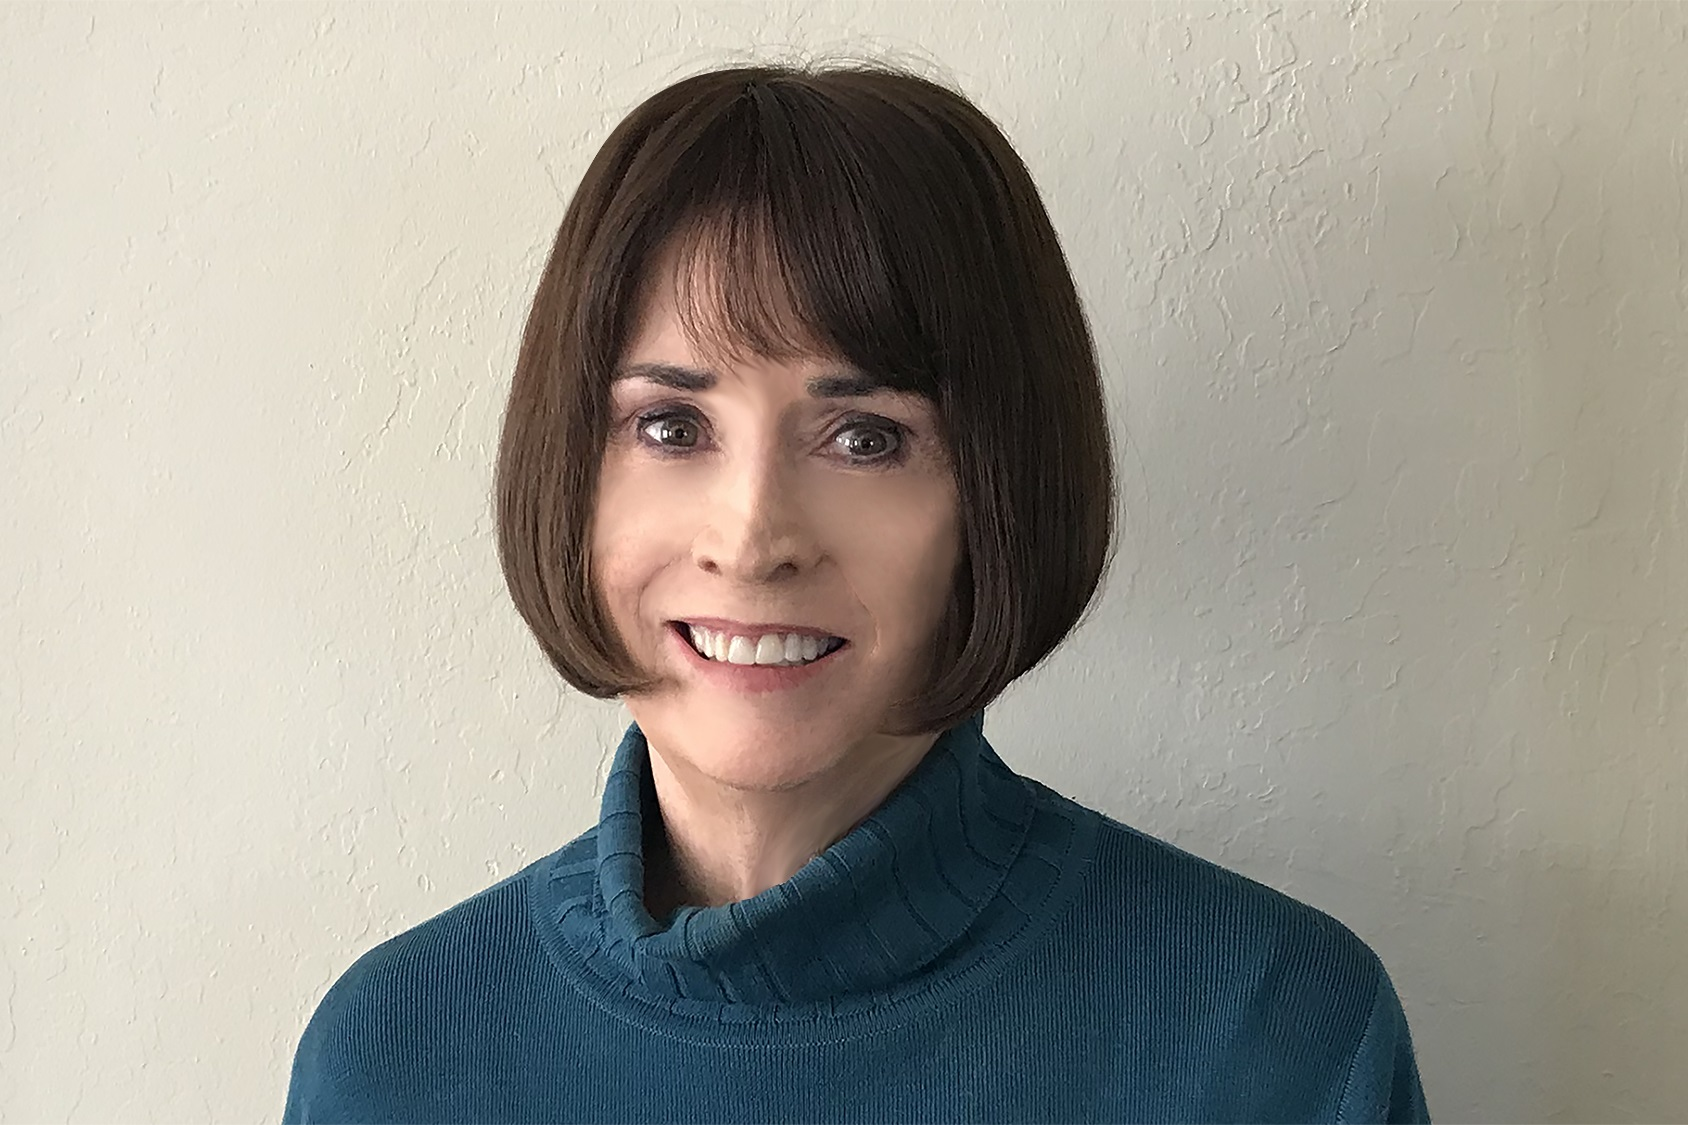 CANCELLED - Genealogical Society of Santa Cruz County Lecture Series -- Evergreen Cemetery: Reversing a Cherished Myth, Dr. Traci Bliss, guest speaker